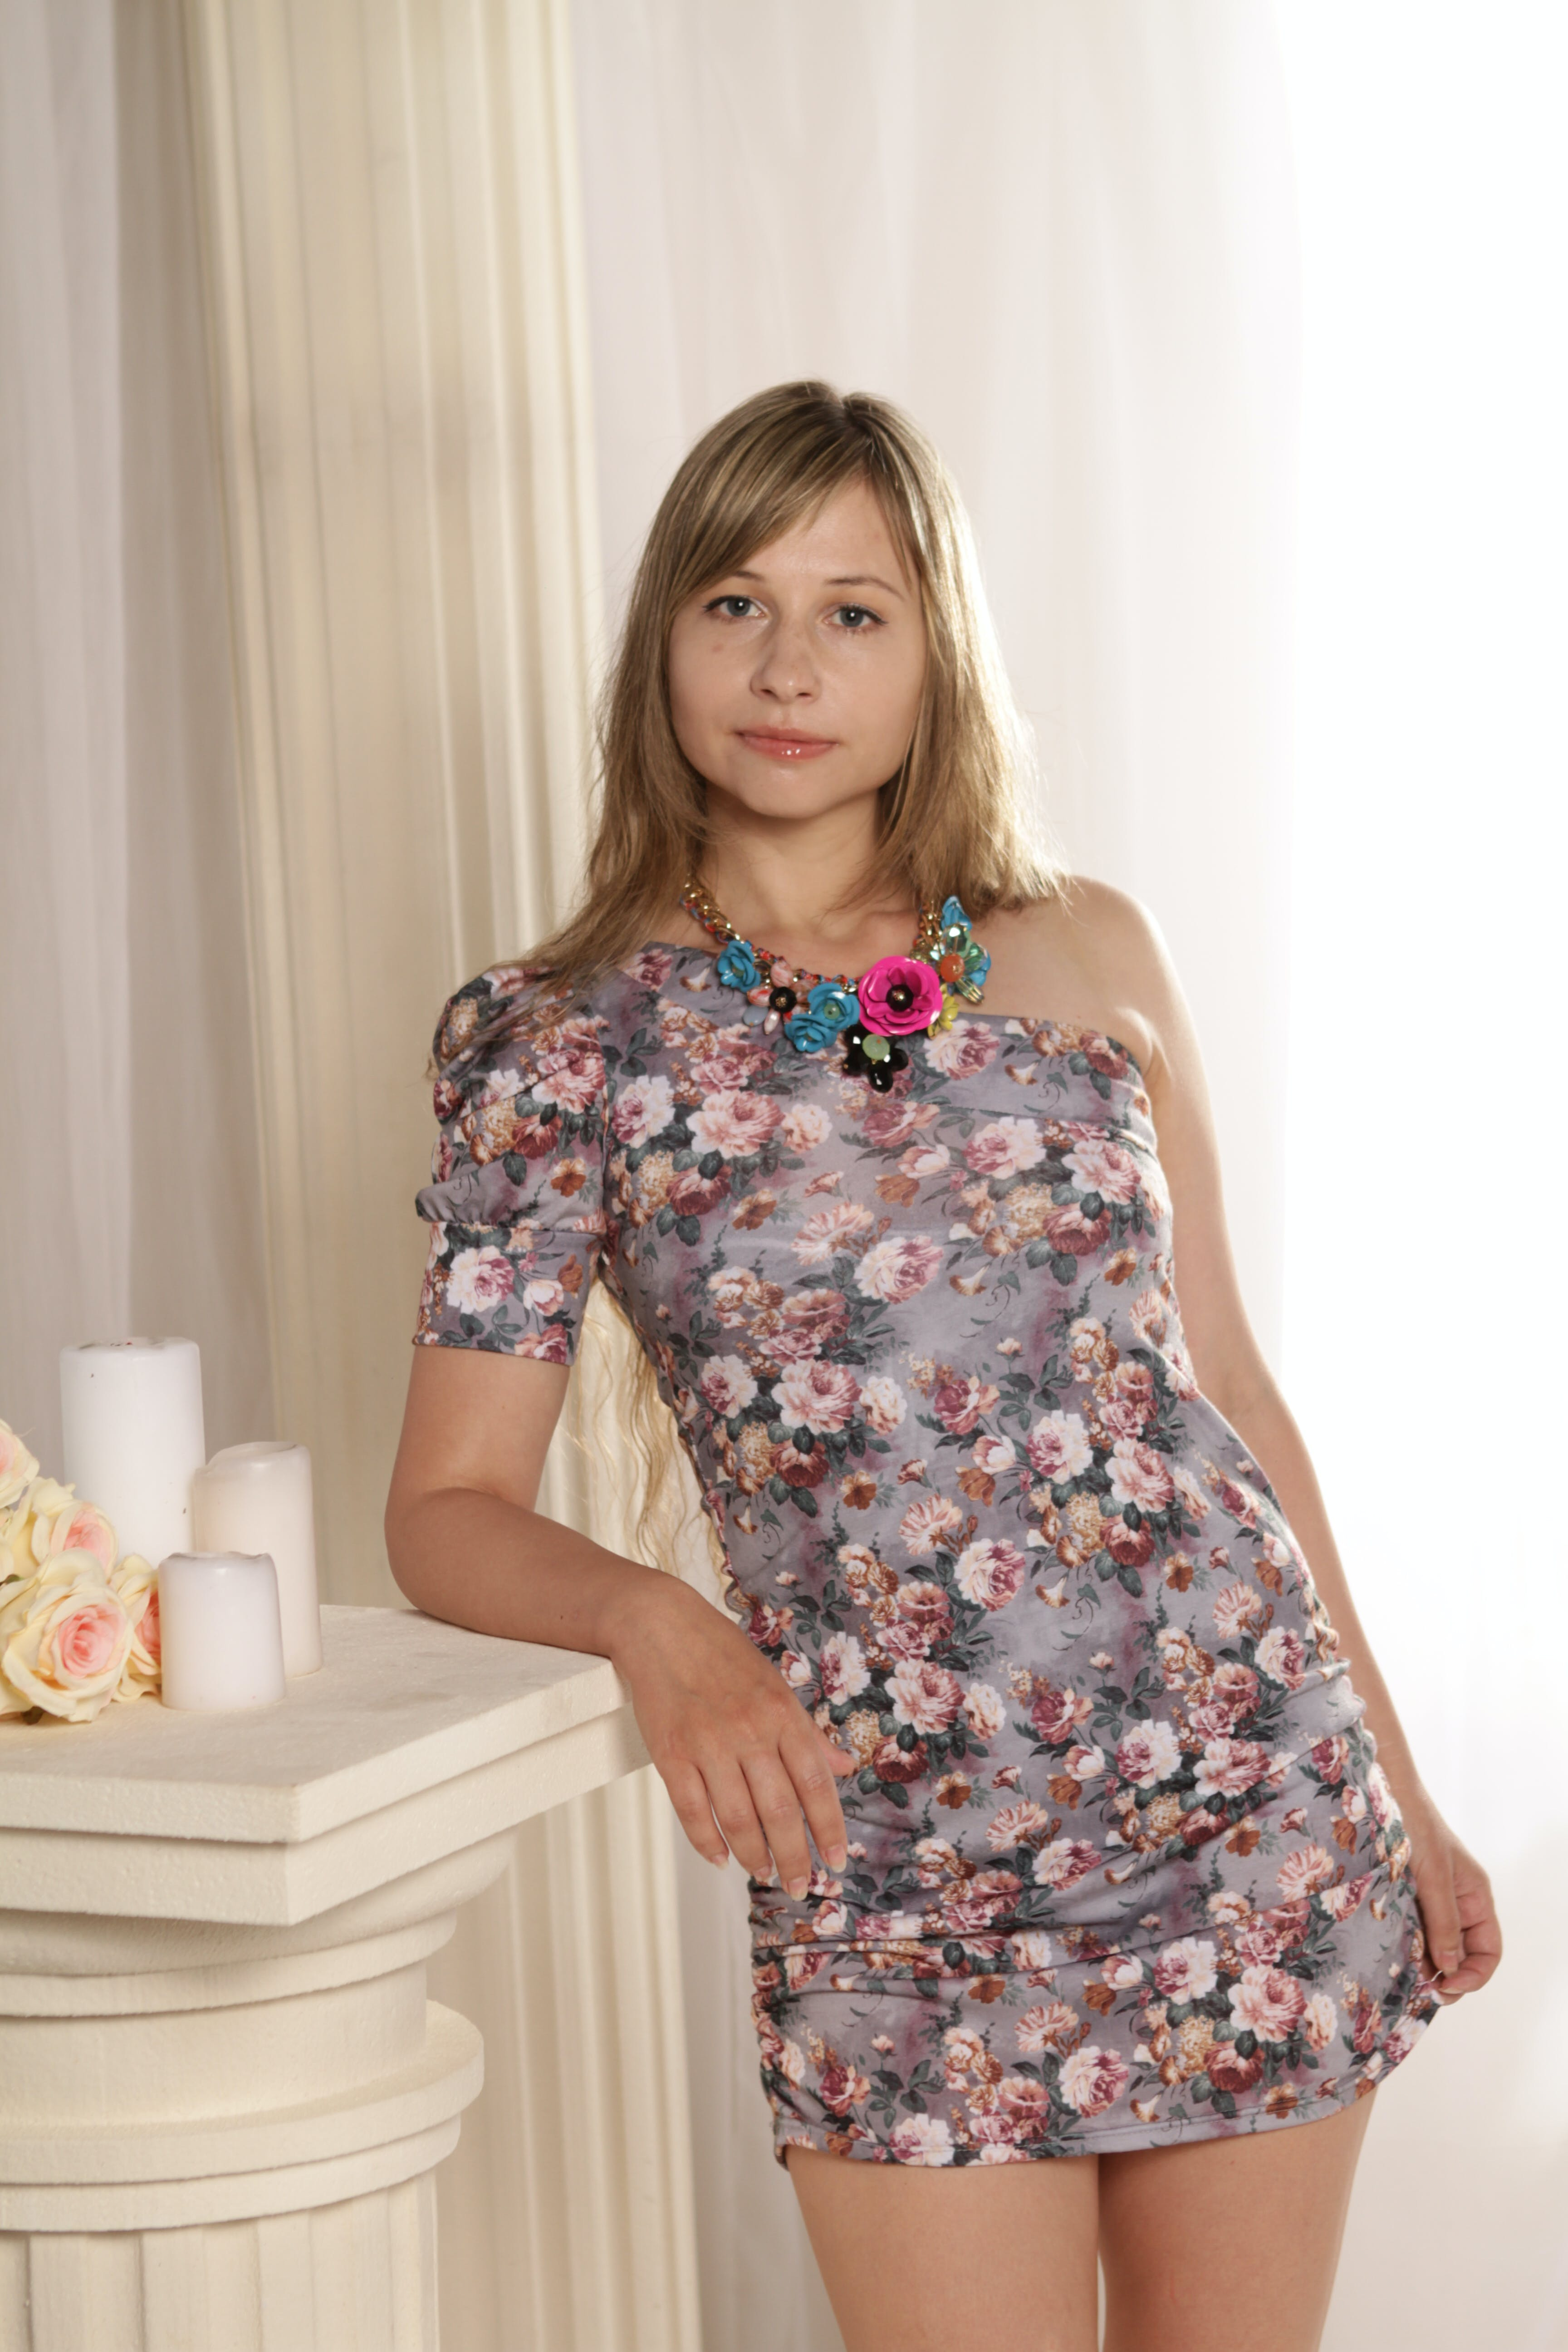 Woman Wearing Gray and Peach Floral One-shoulder Dress